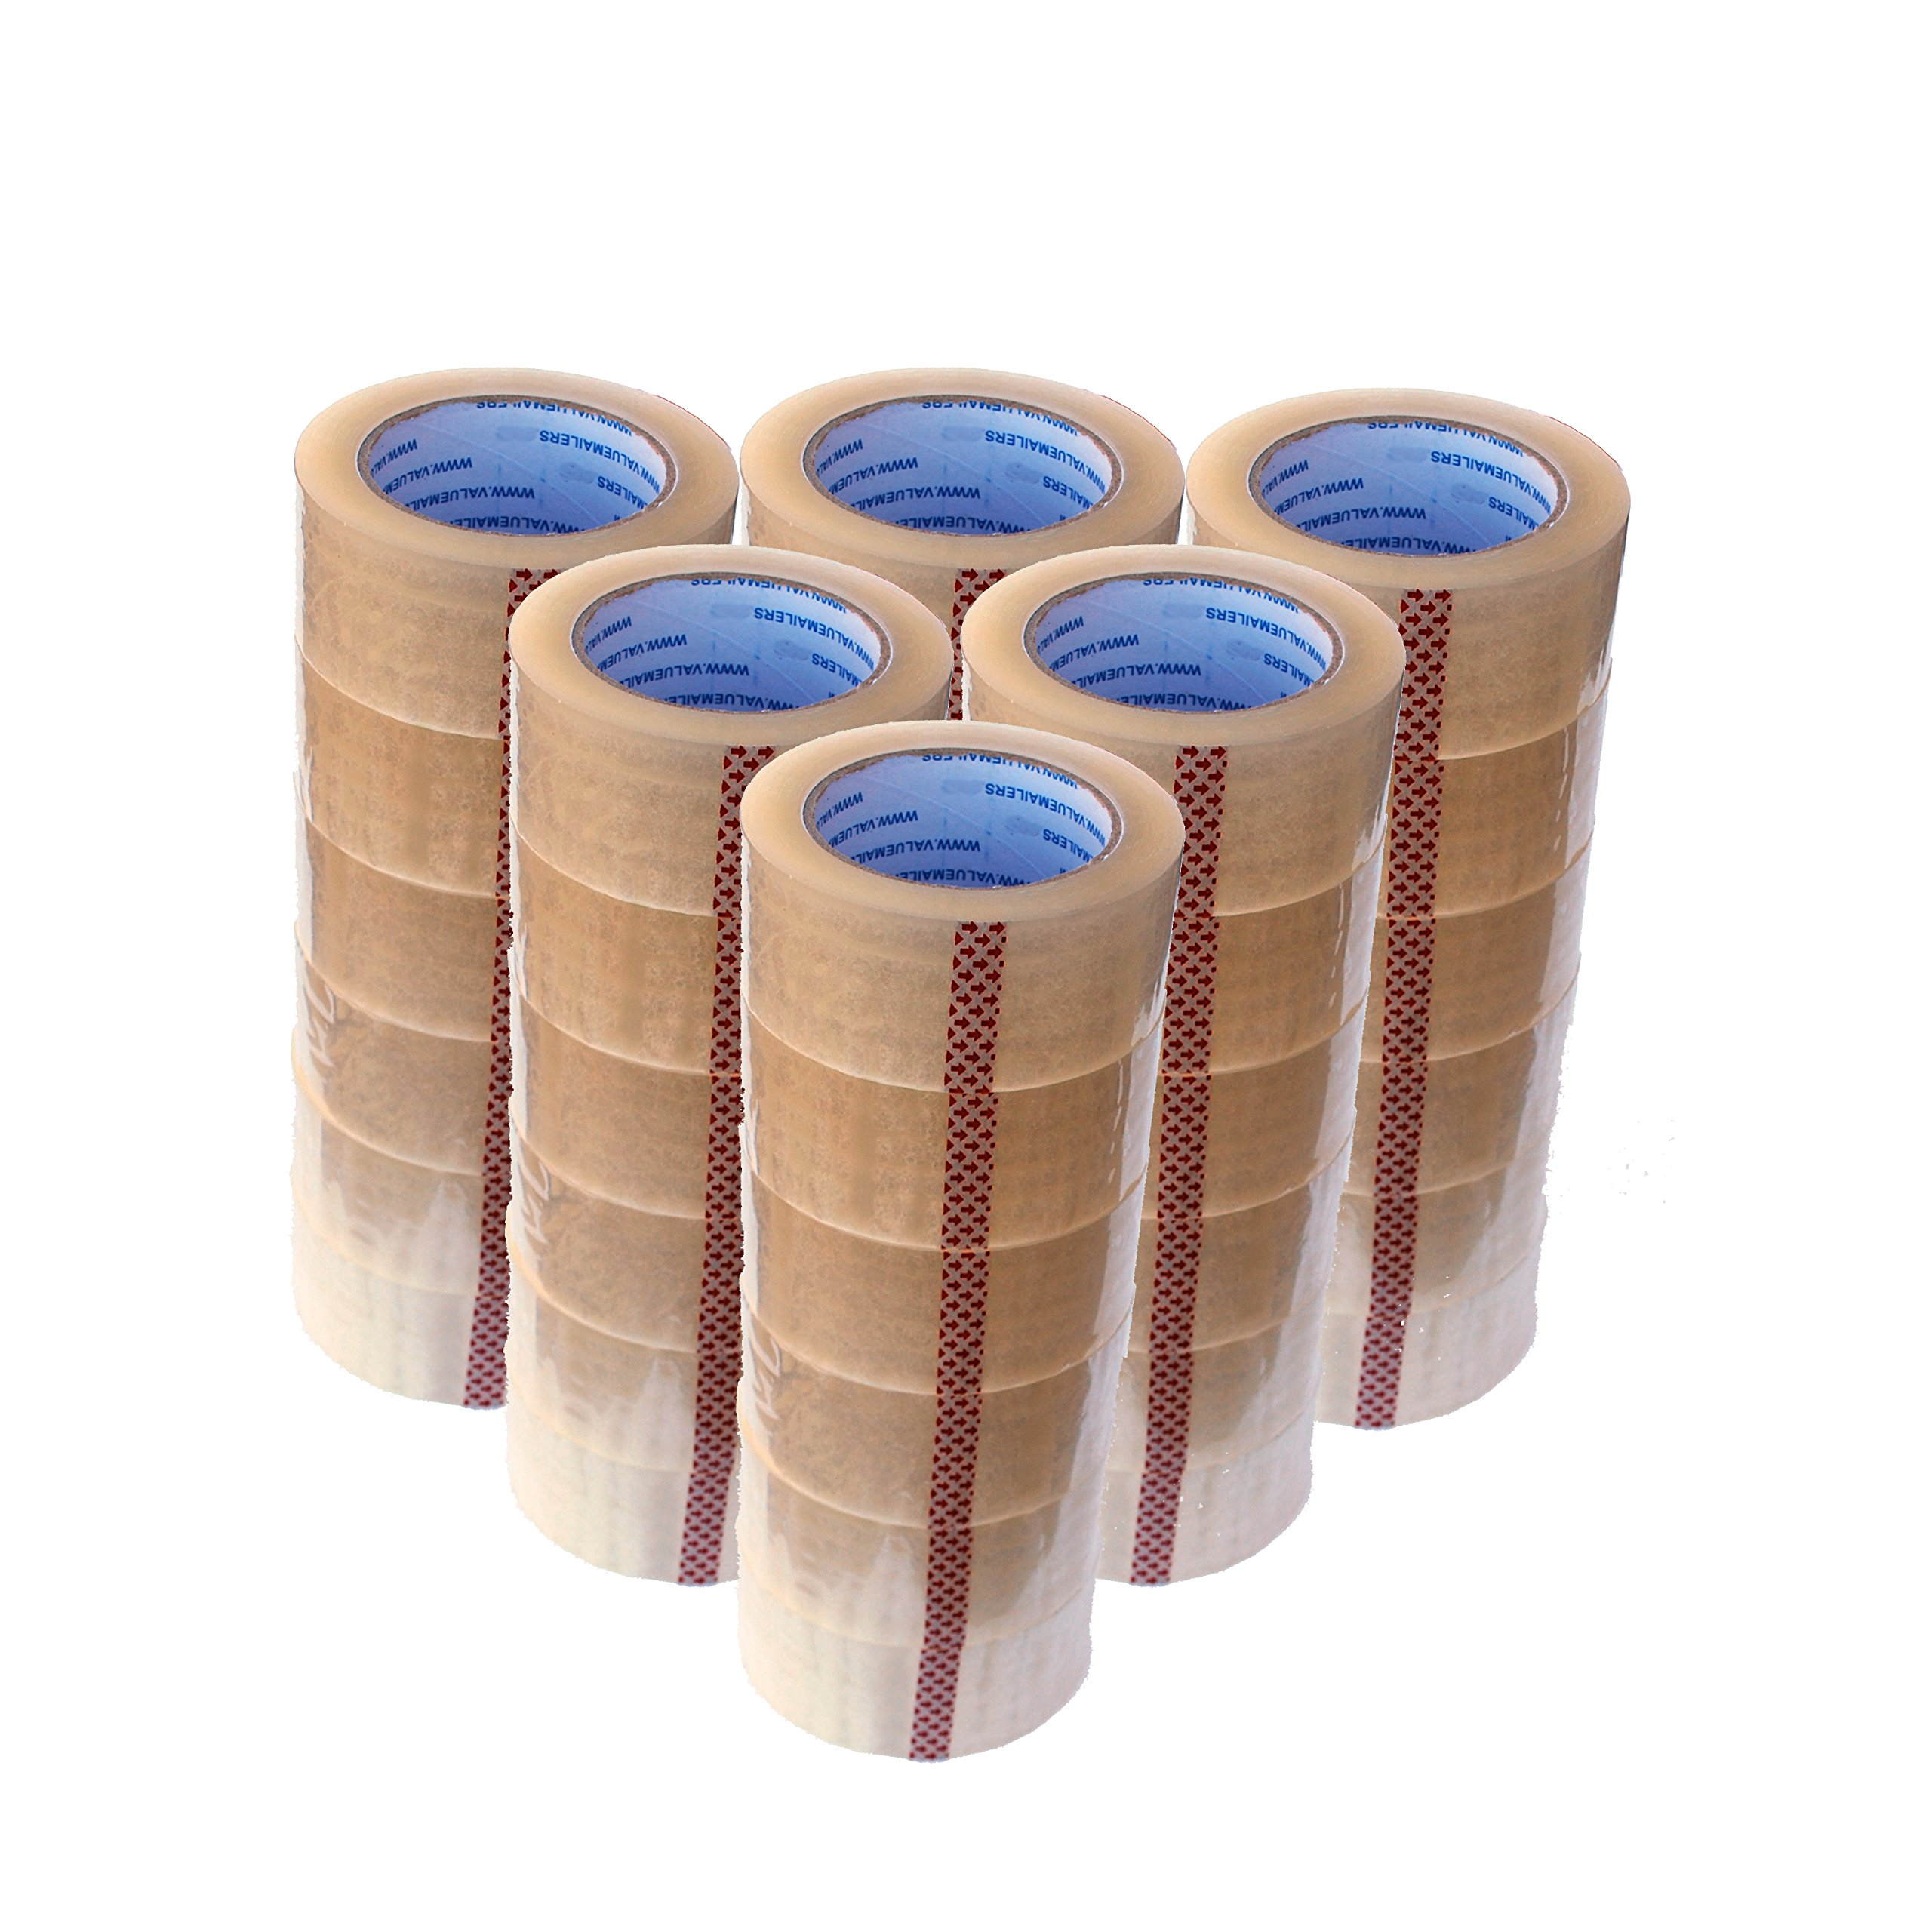 ValueMailers Carton Sealing Tape 2'' X 110 Yards Per Roll - 36 rolls 2 Mil Thick